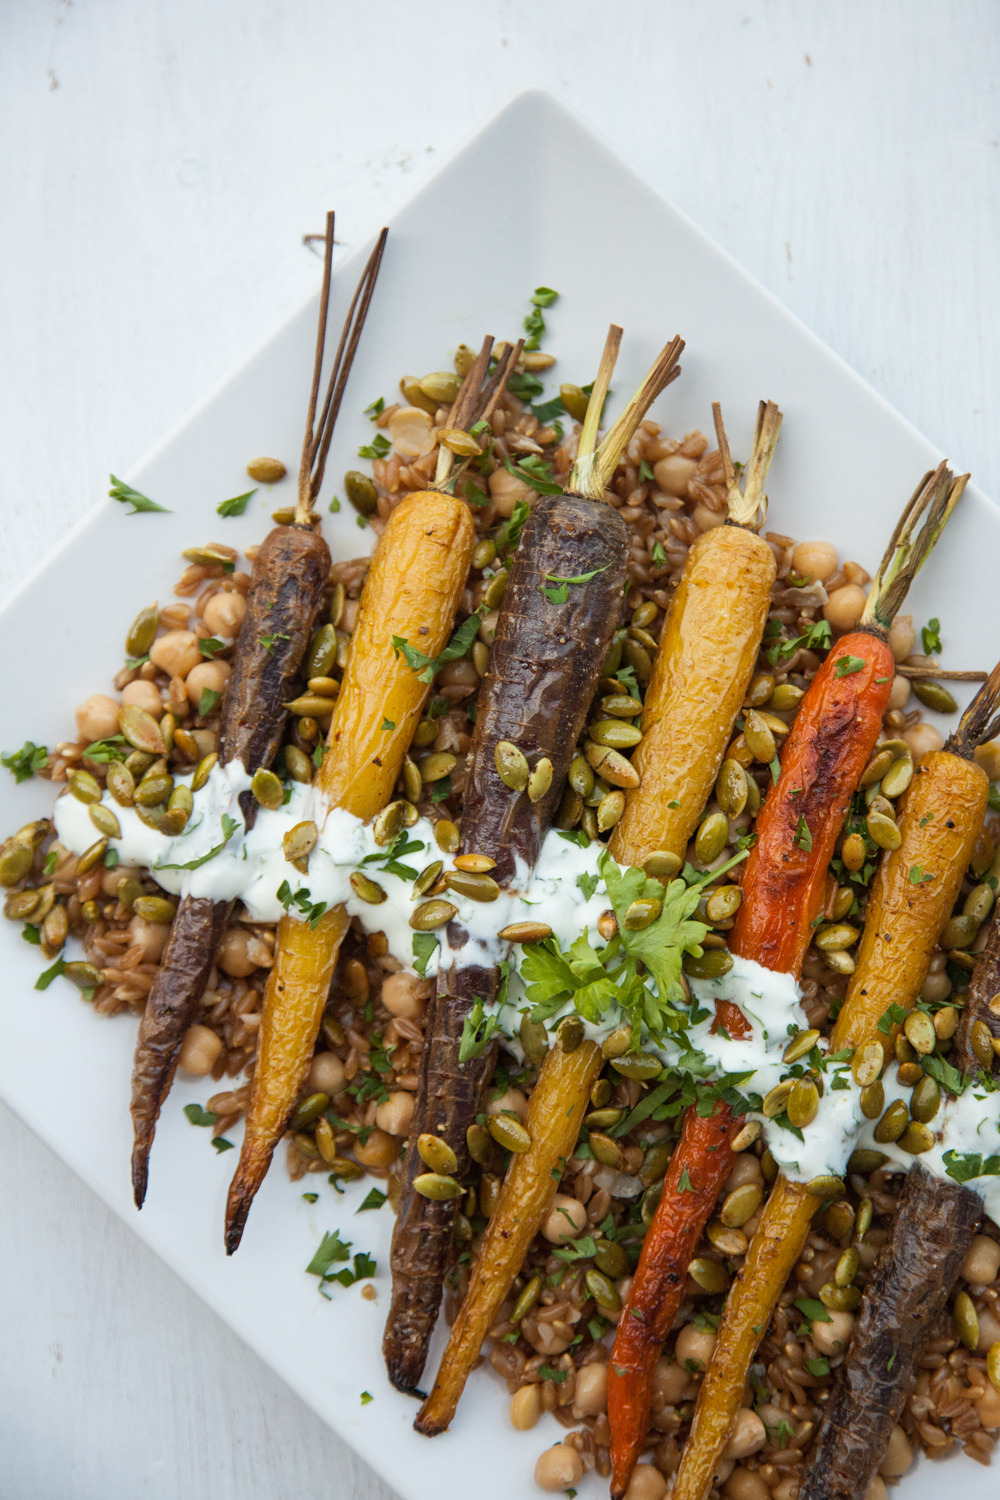 Roasted Heirloom Carrots with Chickpeas and Farro  for Barre Fitness (click for recipe)